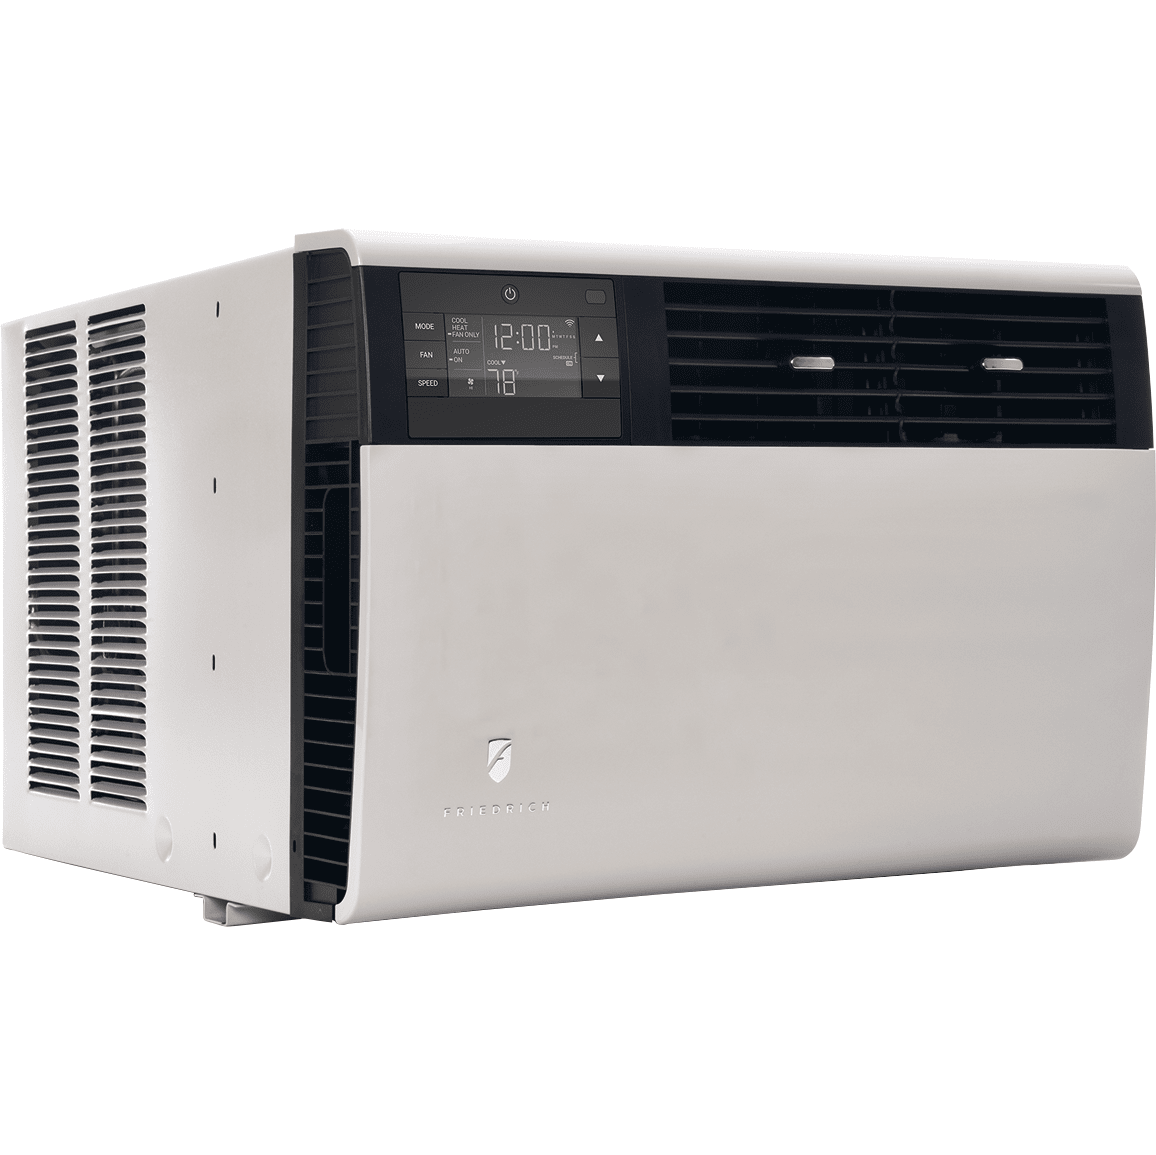 Friedrich Kuhl 8,000 BTU Window Air Conditioner with Electric Heat